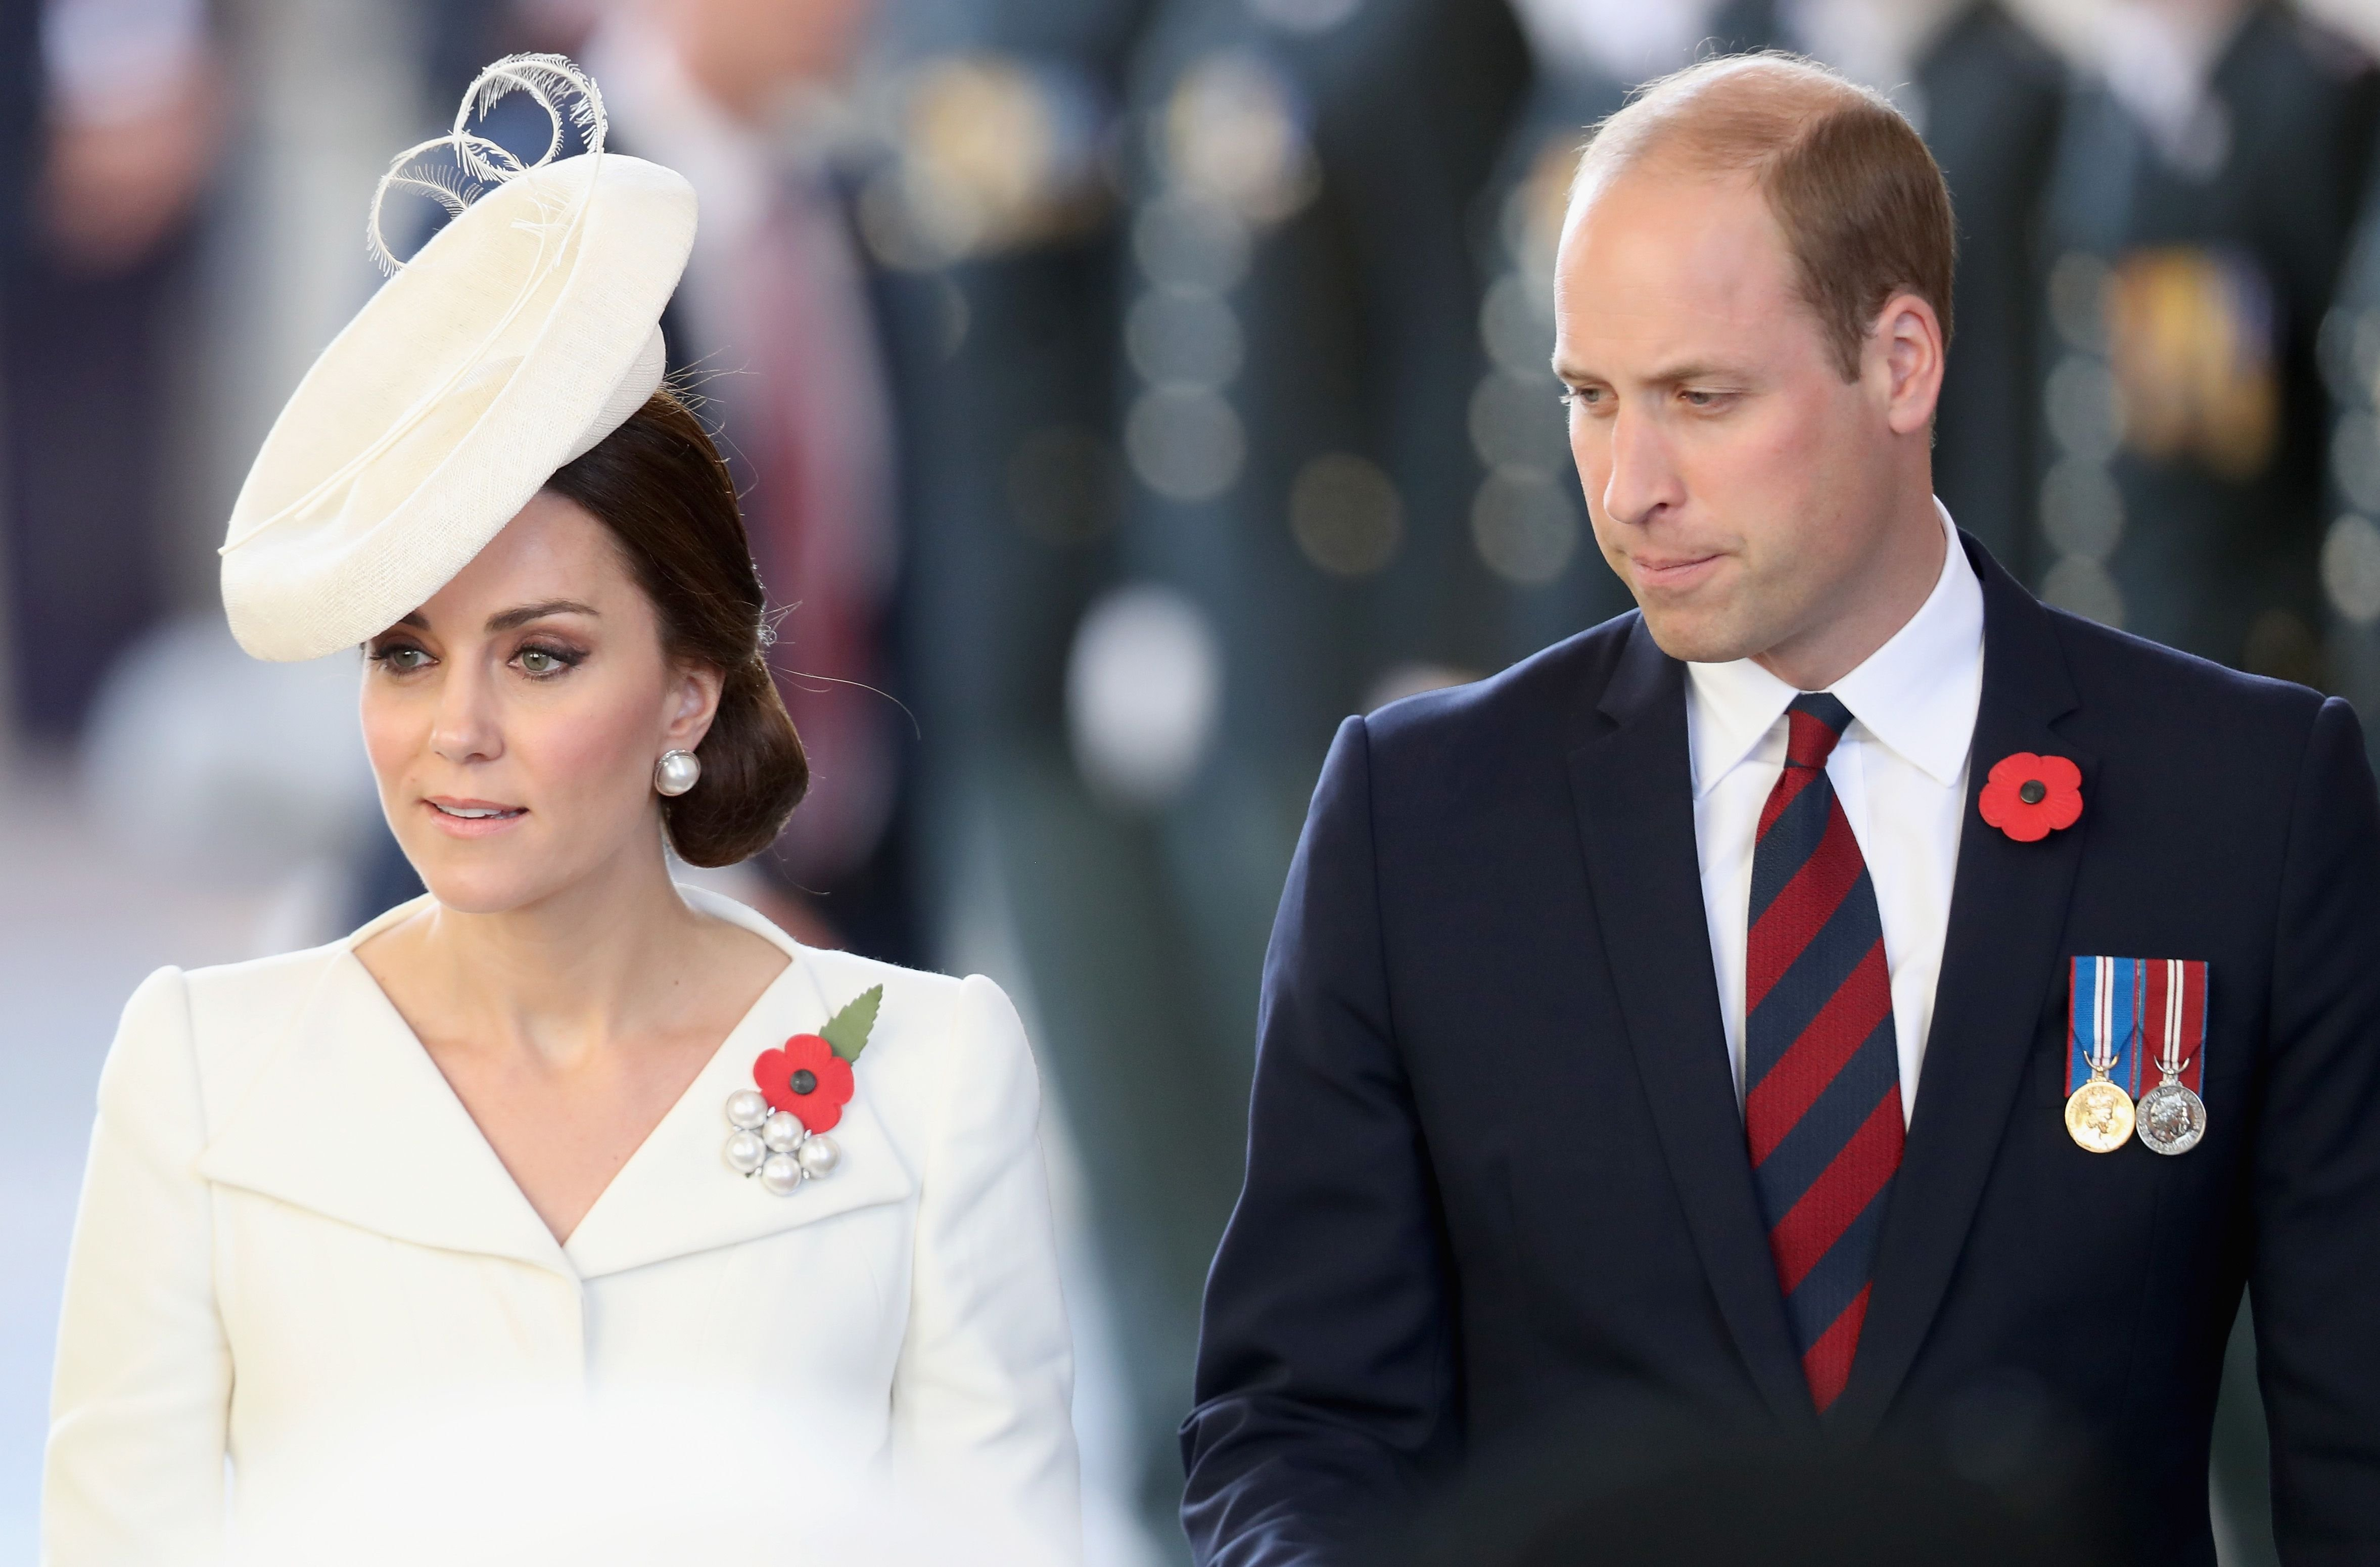 Prince William and Kate Middleton at the Last Post ceremony at the Commonwealth War Graves Commission Ypres (Menin Gate) Memorial on July 30, 2017   Photo: Getty Images